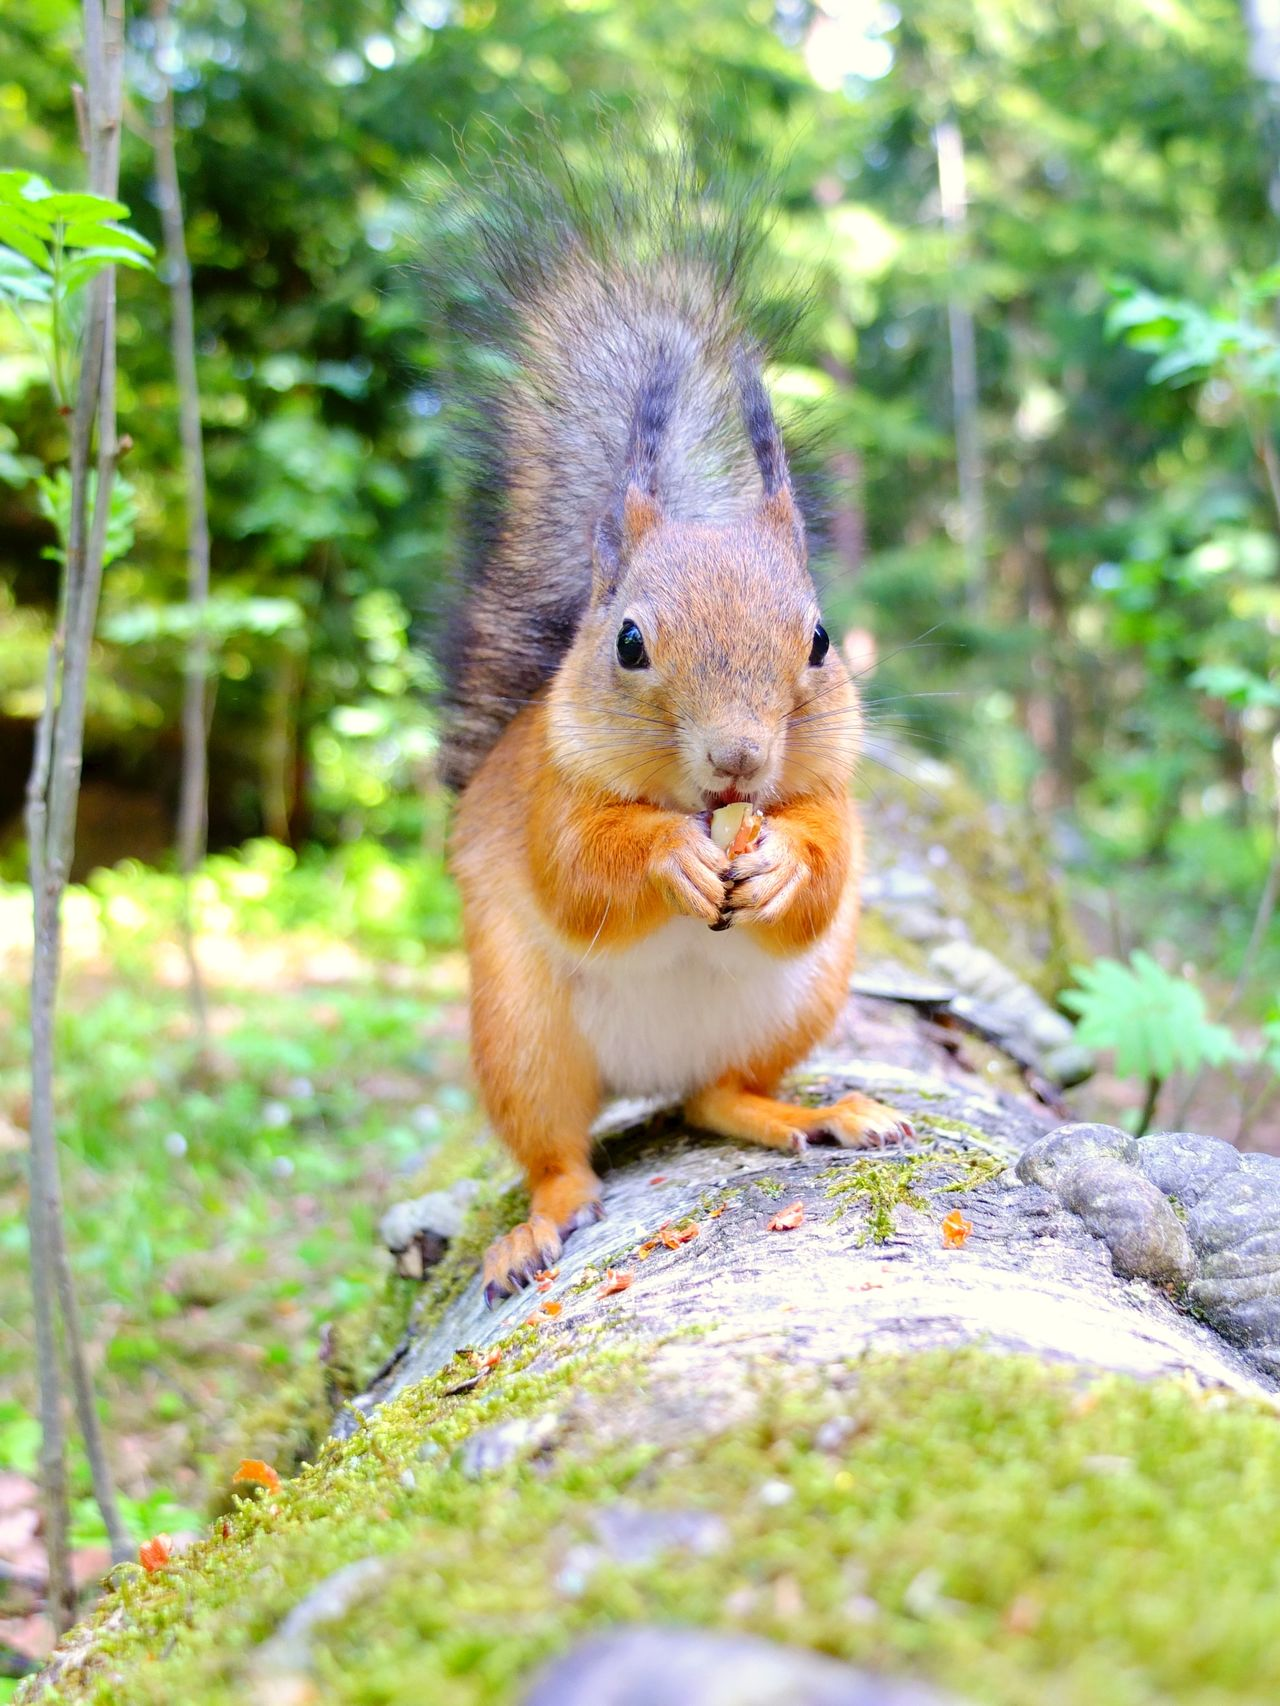 Closeup of squirrel eating a nut Adorable Animal Themes Animal Wildlife Animals In The Wild Close-up Cute Day Finland Furry Helsinki Lovely Lovelynatureshots Mammal Nature No People Nut One Animal Outdoors Seurasaari Small Squirrel Squirrel Squirrel Closeup Squirrel Photo